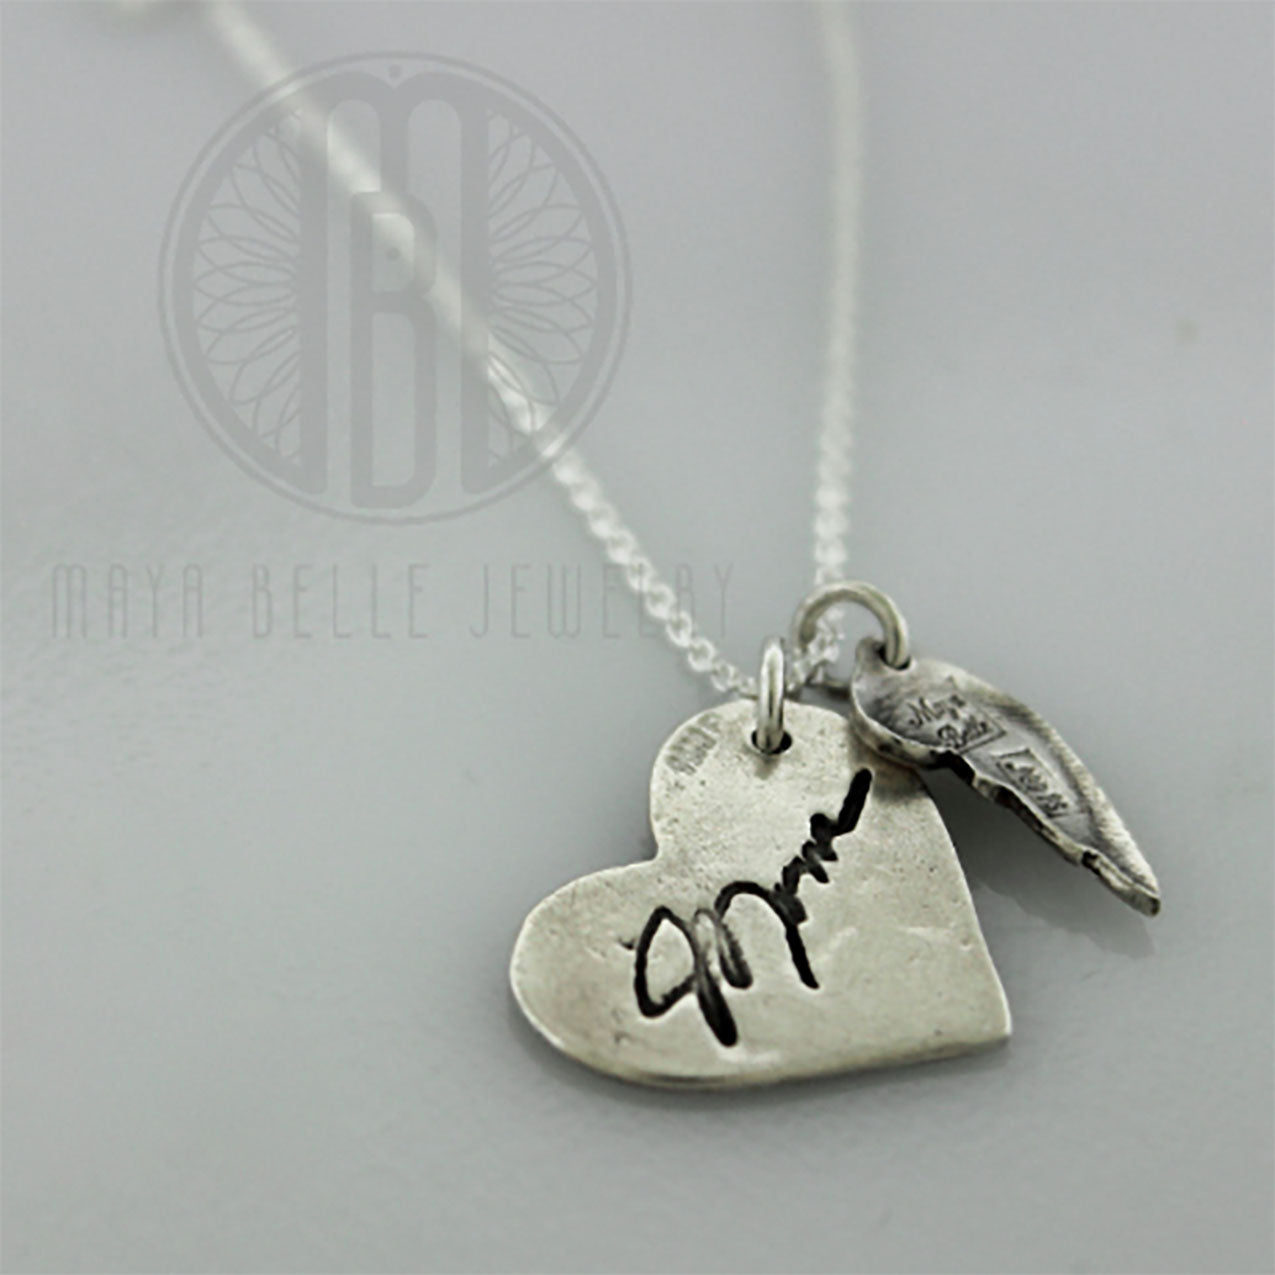 Handwriting Angel Wing Necklace in Silver - Maya Belle Jewelry